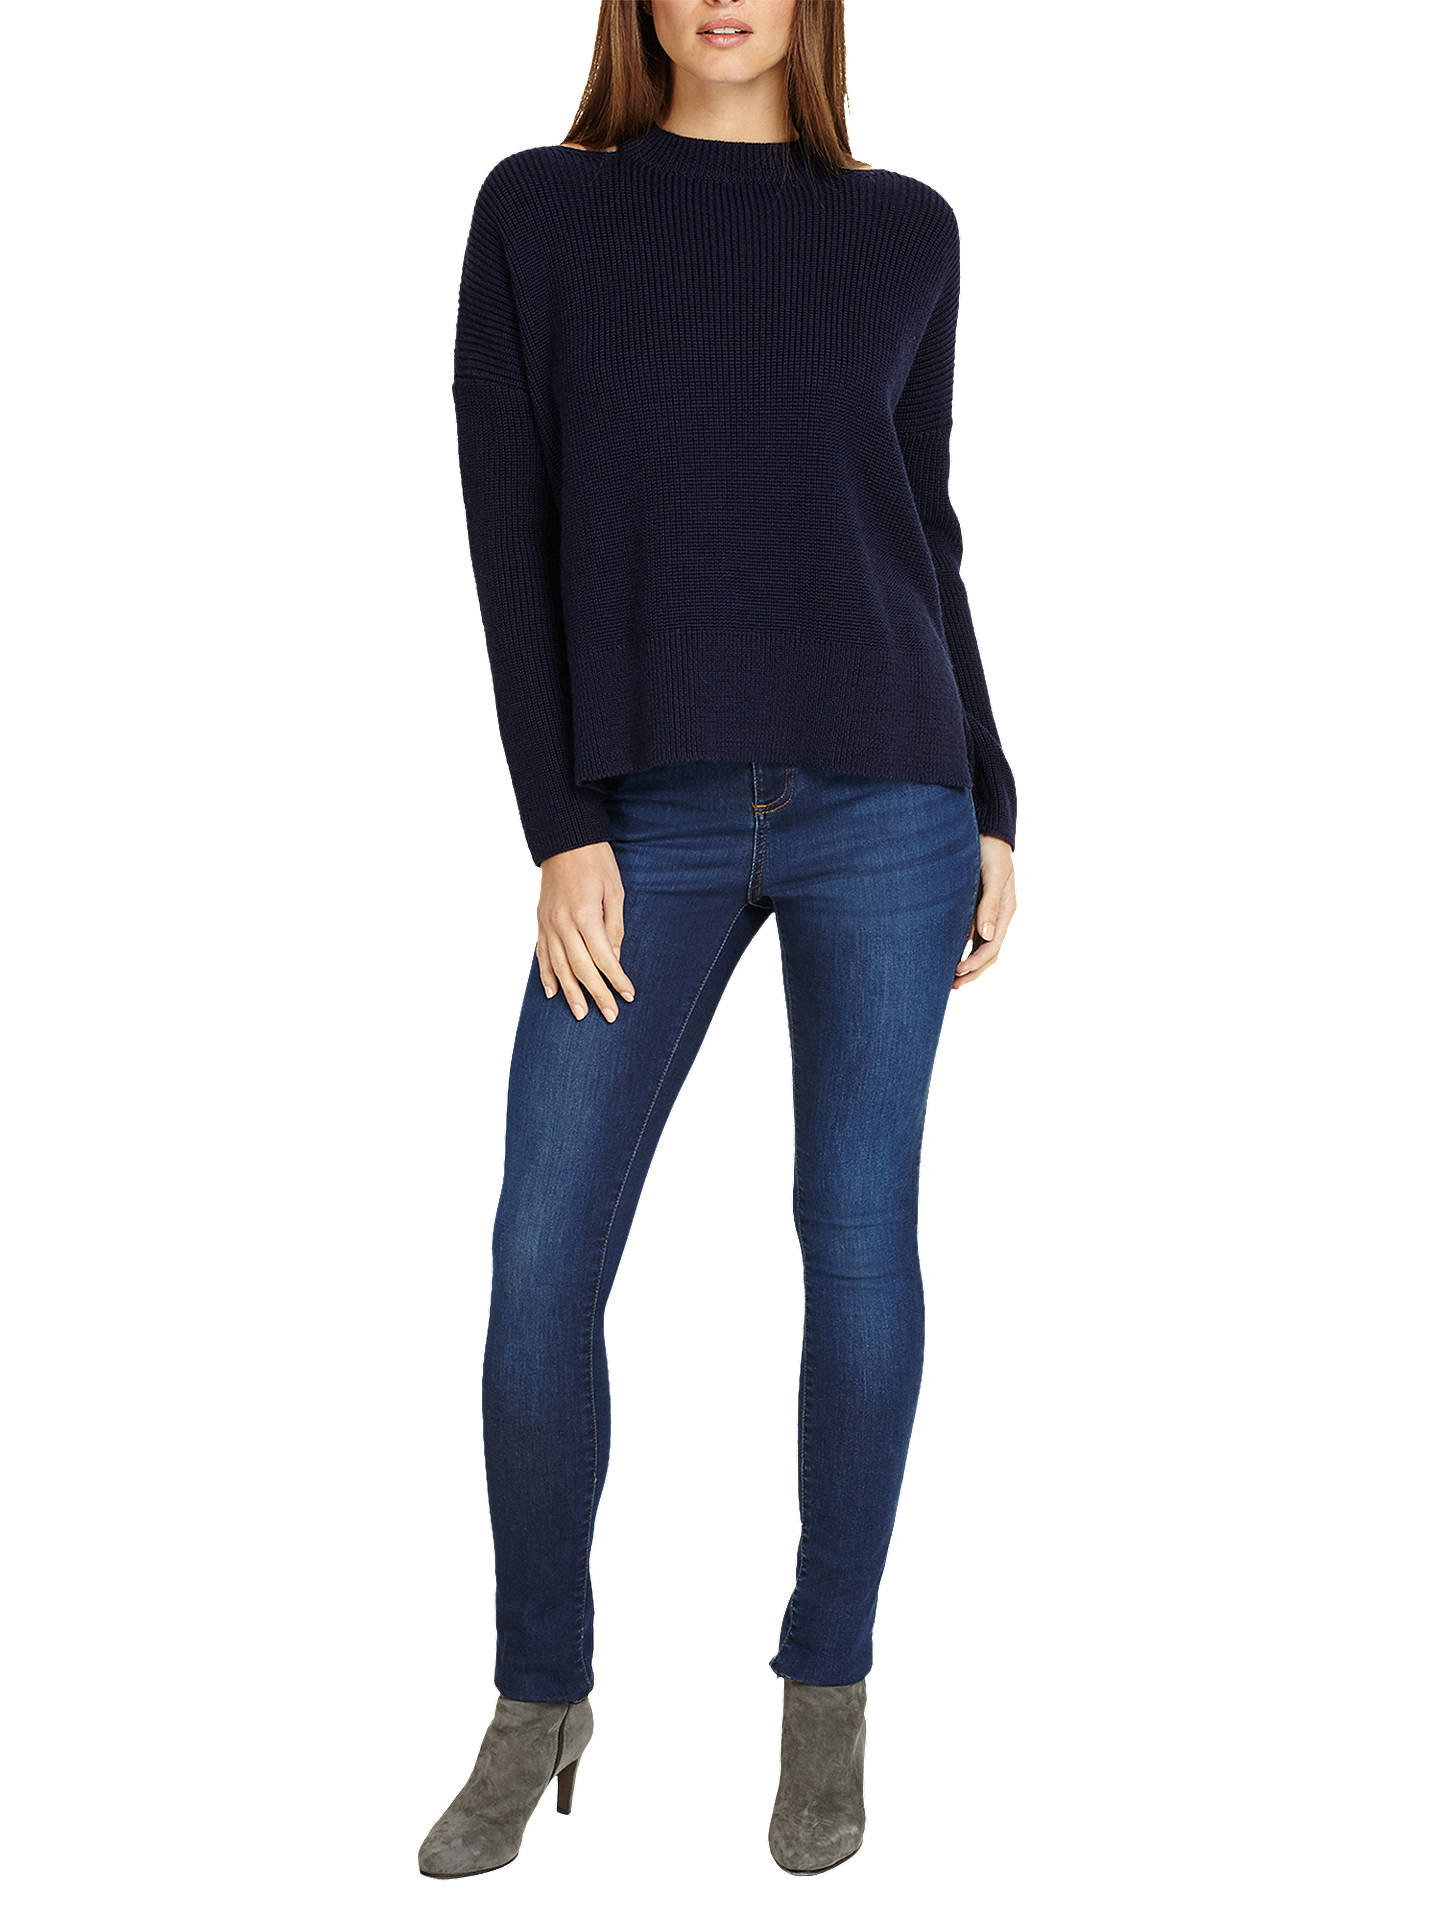 BuyPhase Eight Cammi Cut Neck Chunky Knit Jumper, Navy, M Online at johnlewis.com